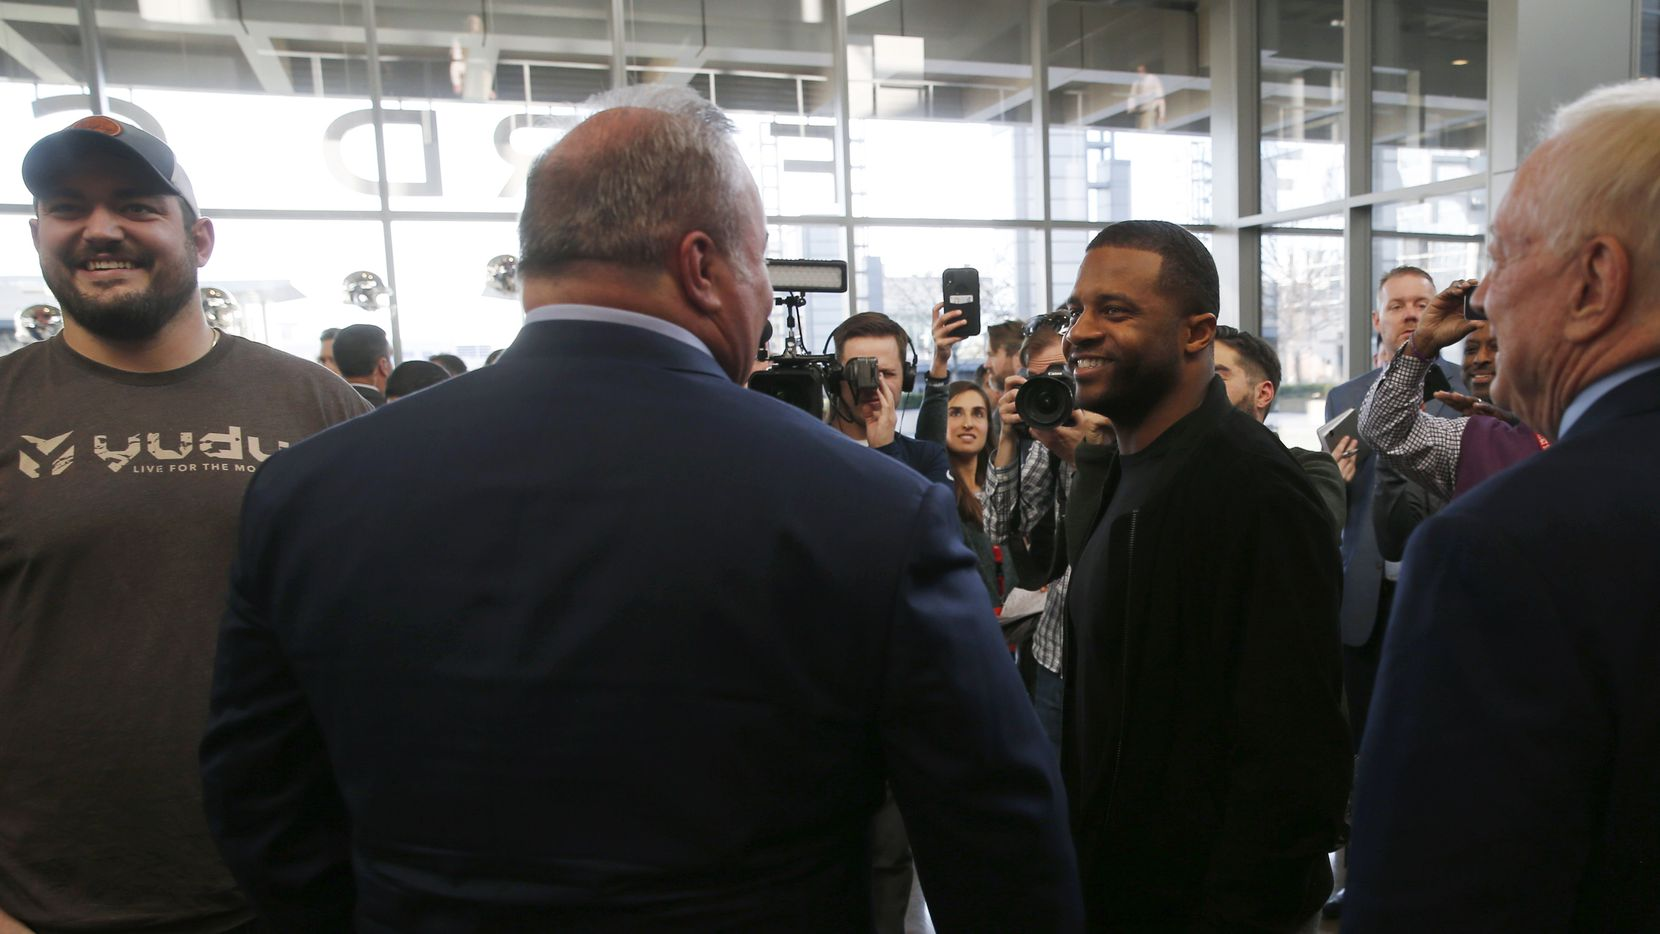 Dallas Cowboys wide receiver Randall Cobb (18) talks with Dallas Cowboys new head coach Mike McCarthy after his introductory press conference in the Ford Center at The Star in Frisco, on Wednesday, January 8, 2020.